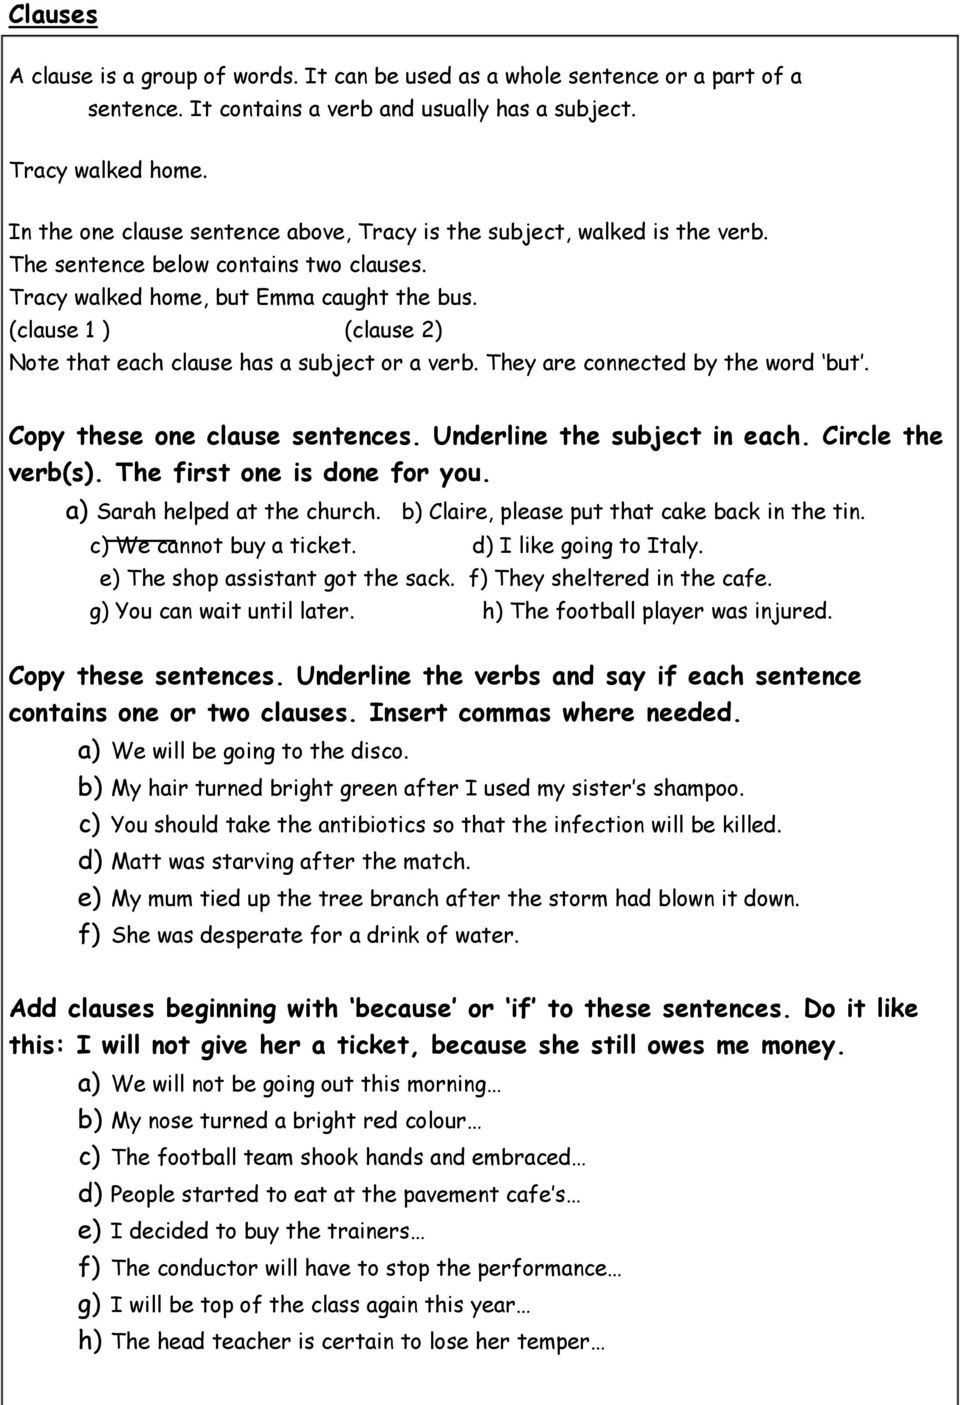 (clause 1 ) (clause 2) Note that each clause has a subject or a verb. They are connected by the word but. Copy these one clause sentences. Underline the subject in each. Circle the verb(s).